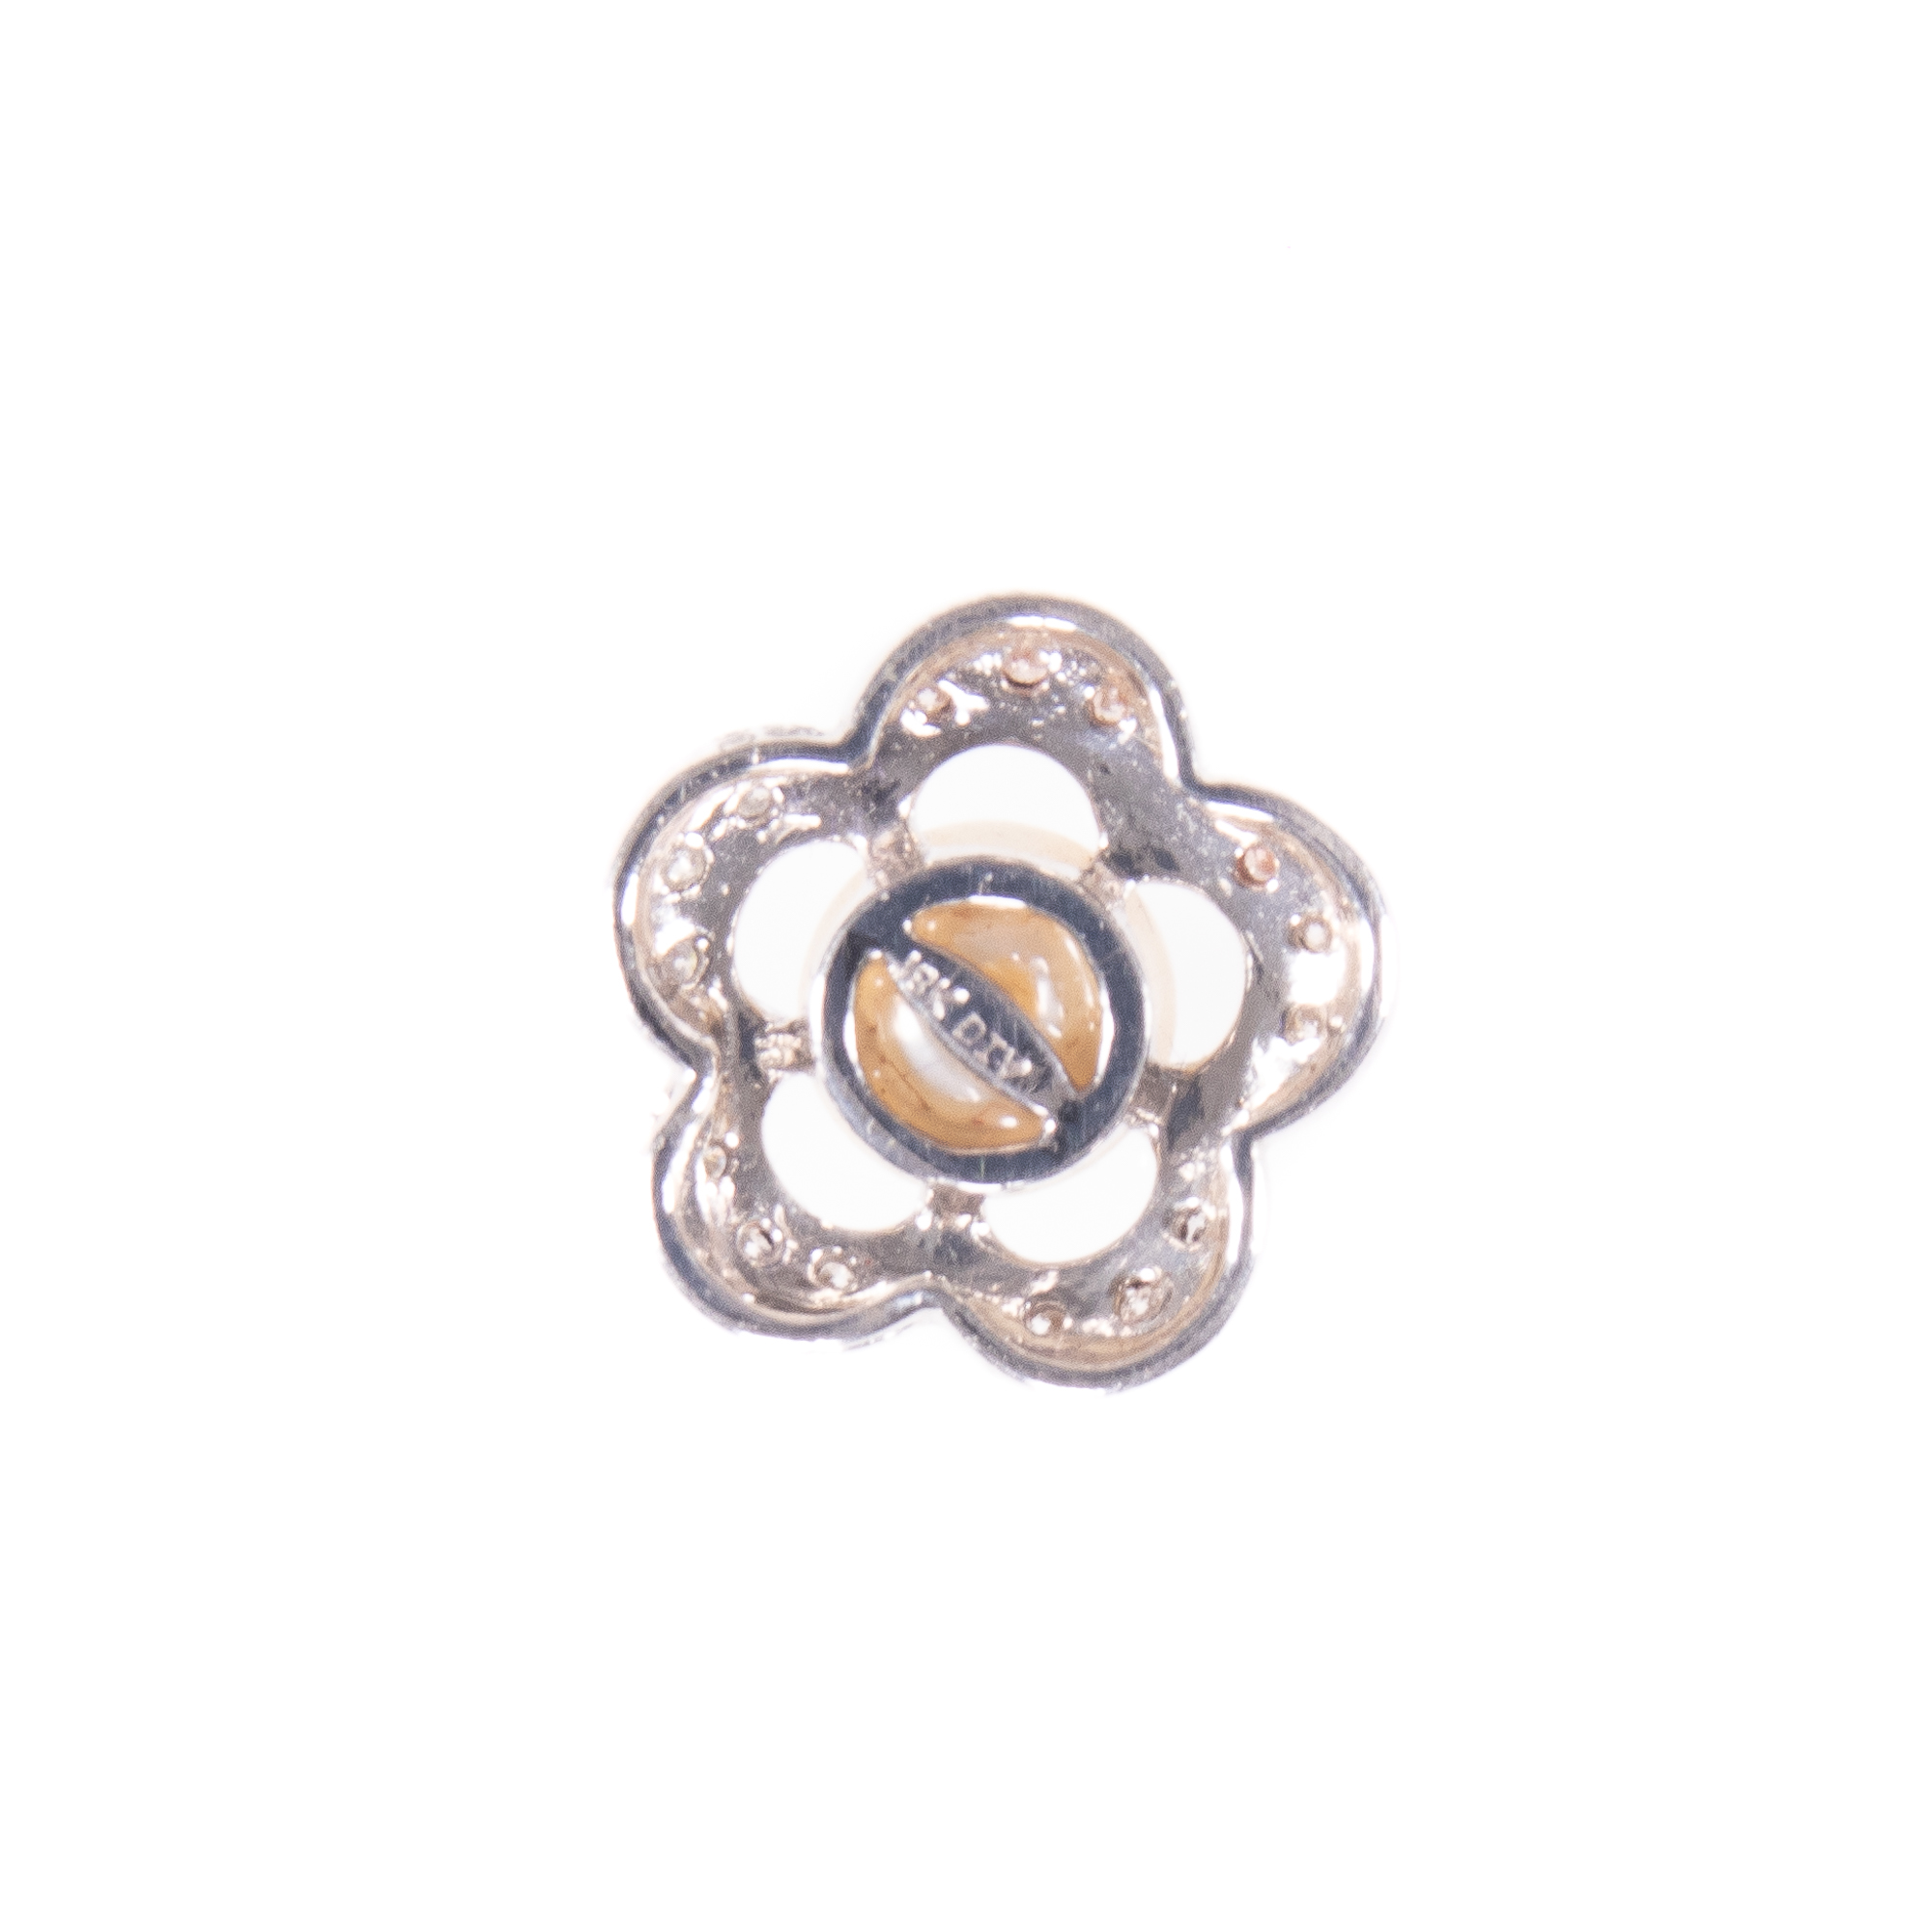 18ct White Gold Diamond & Pearl Floral Pendant - Image 5 of 6